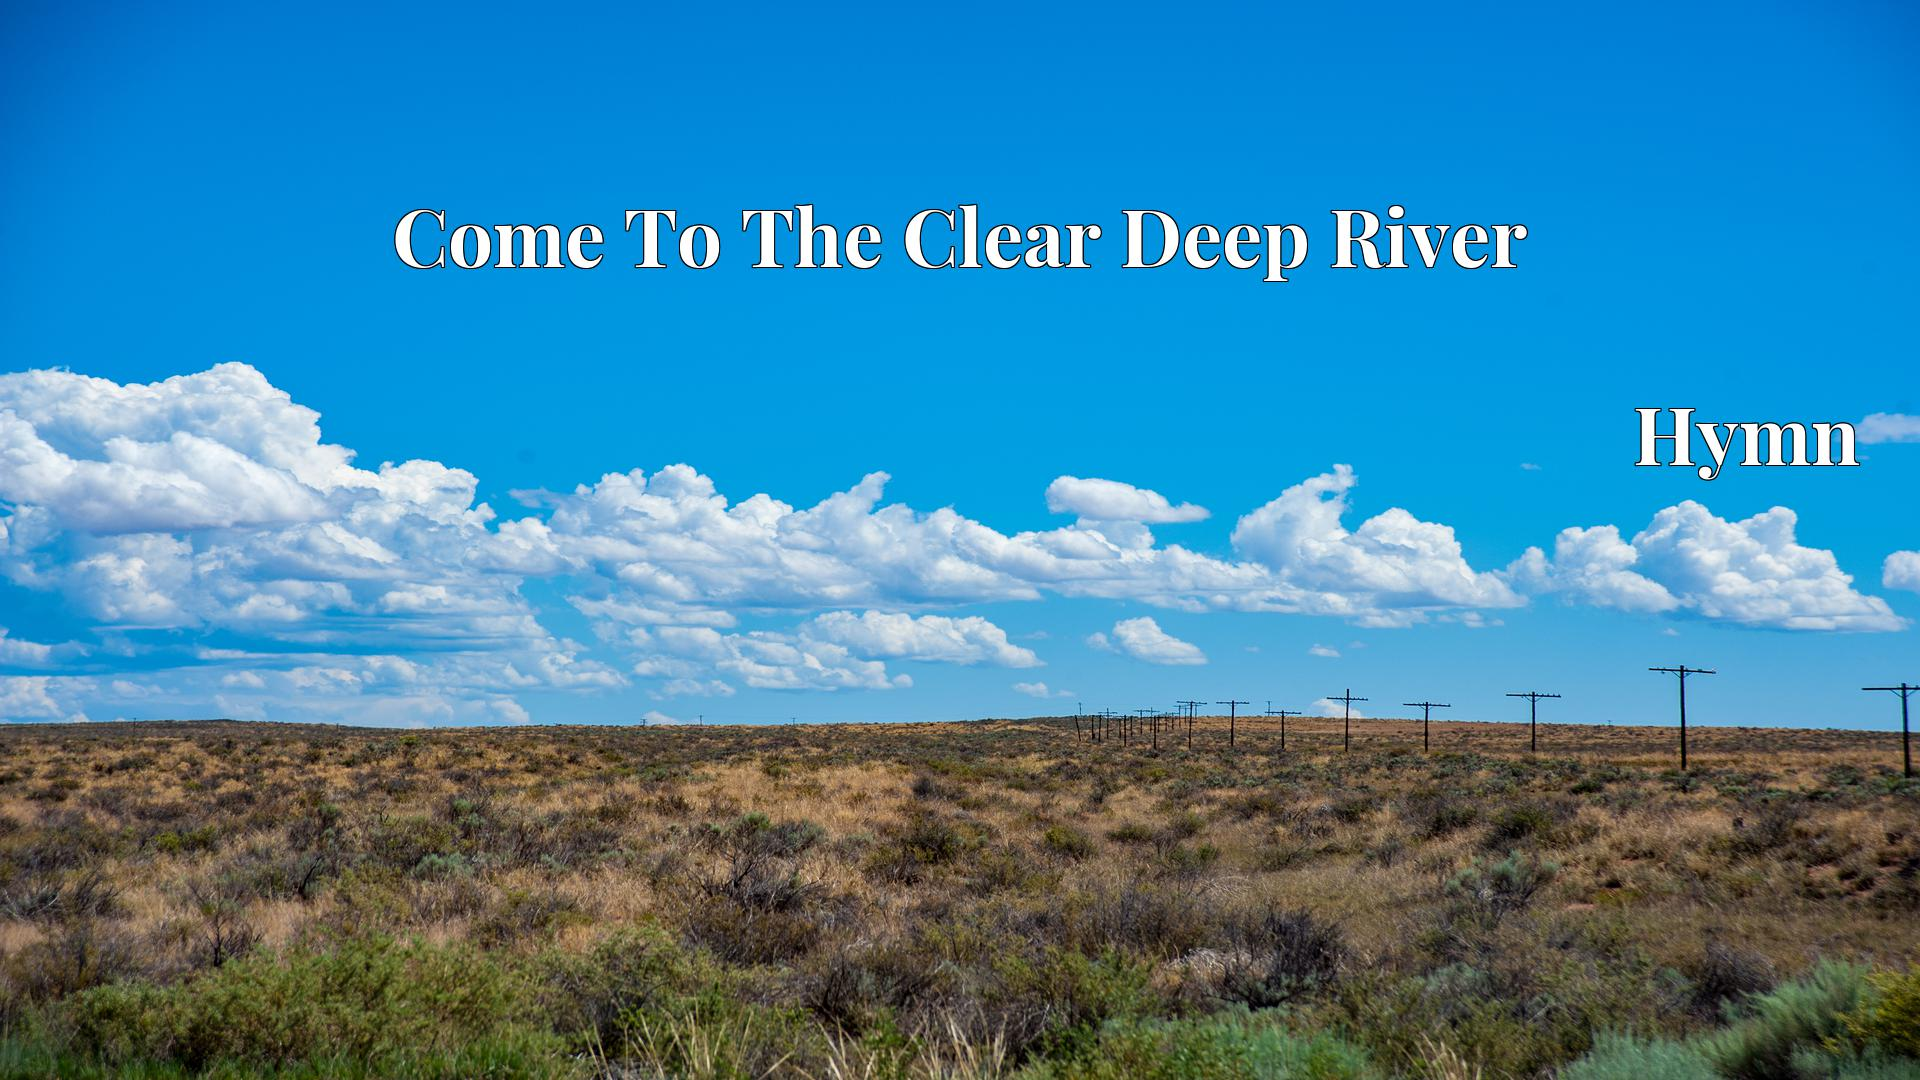 Come To The Clear Deep River Hymn Lyric